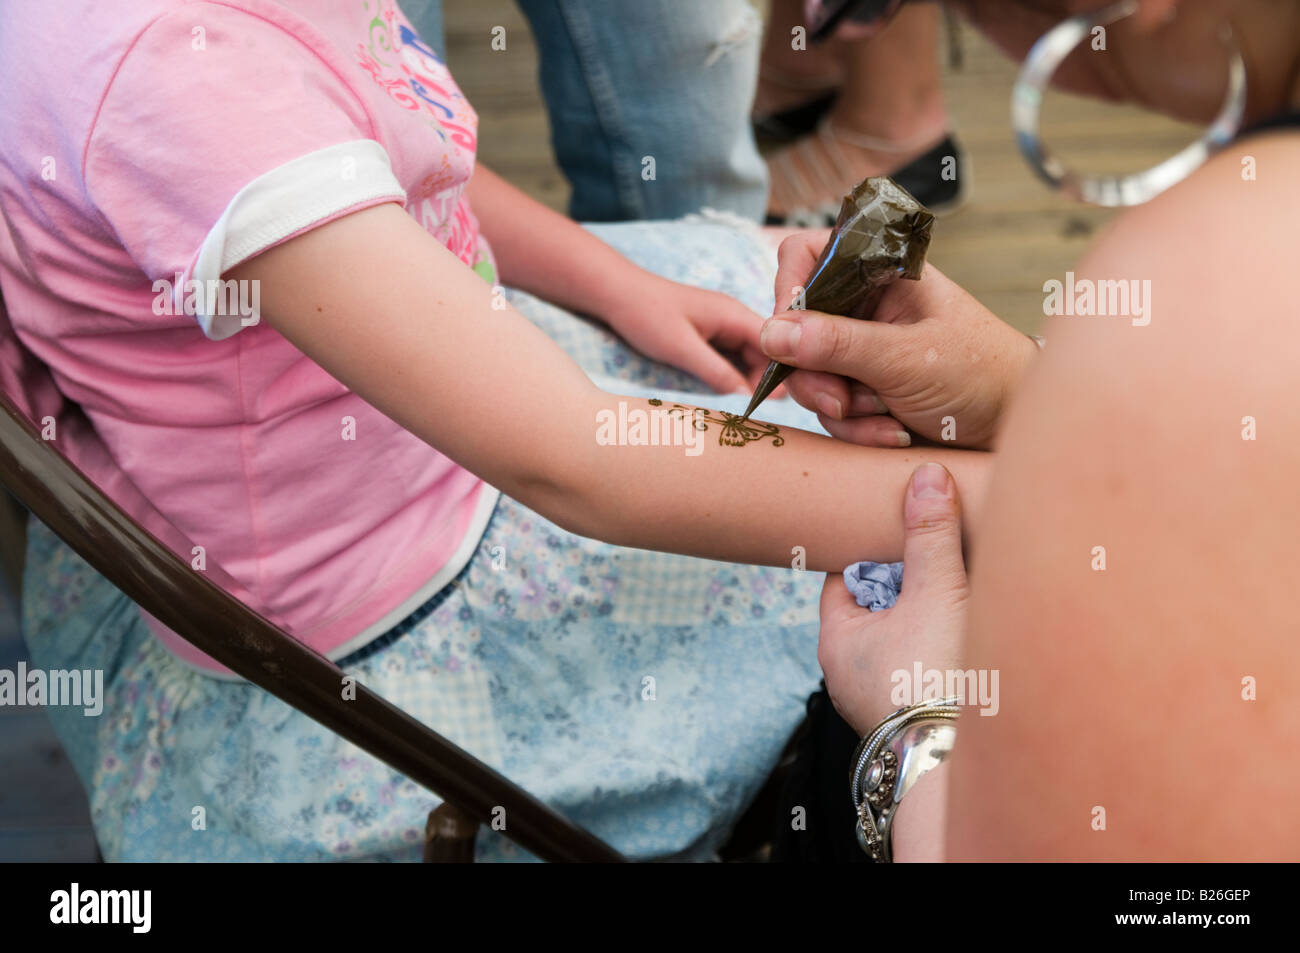 Young girl having henna tattoo on fore arm - Stock Image